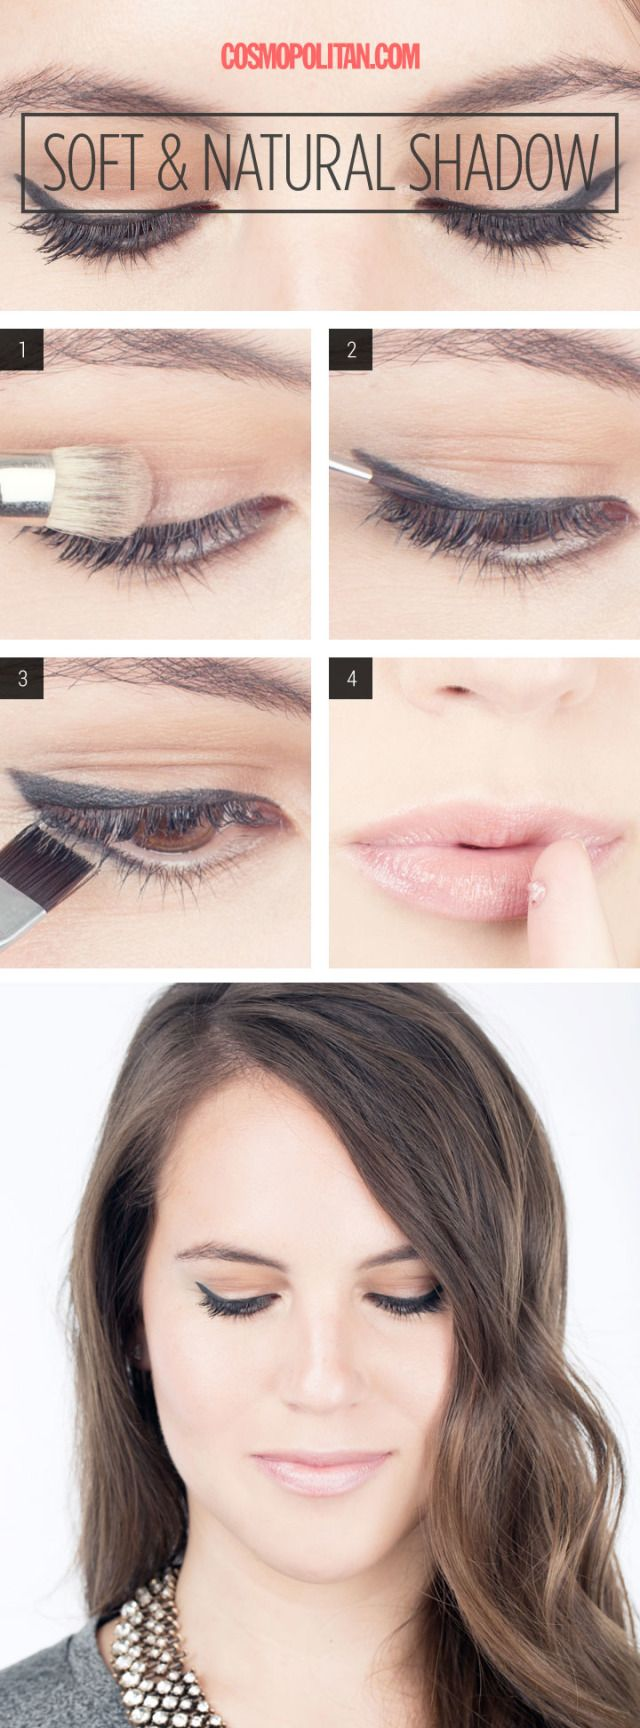 Makeup How-To: Soft and Natural Eyeshadow - This is an everyday look you're going to want to recreate.